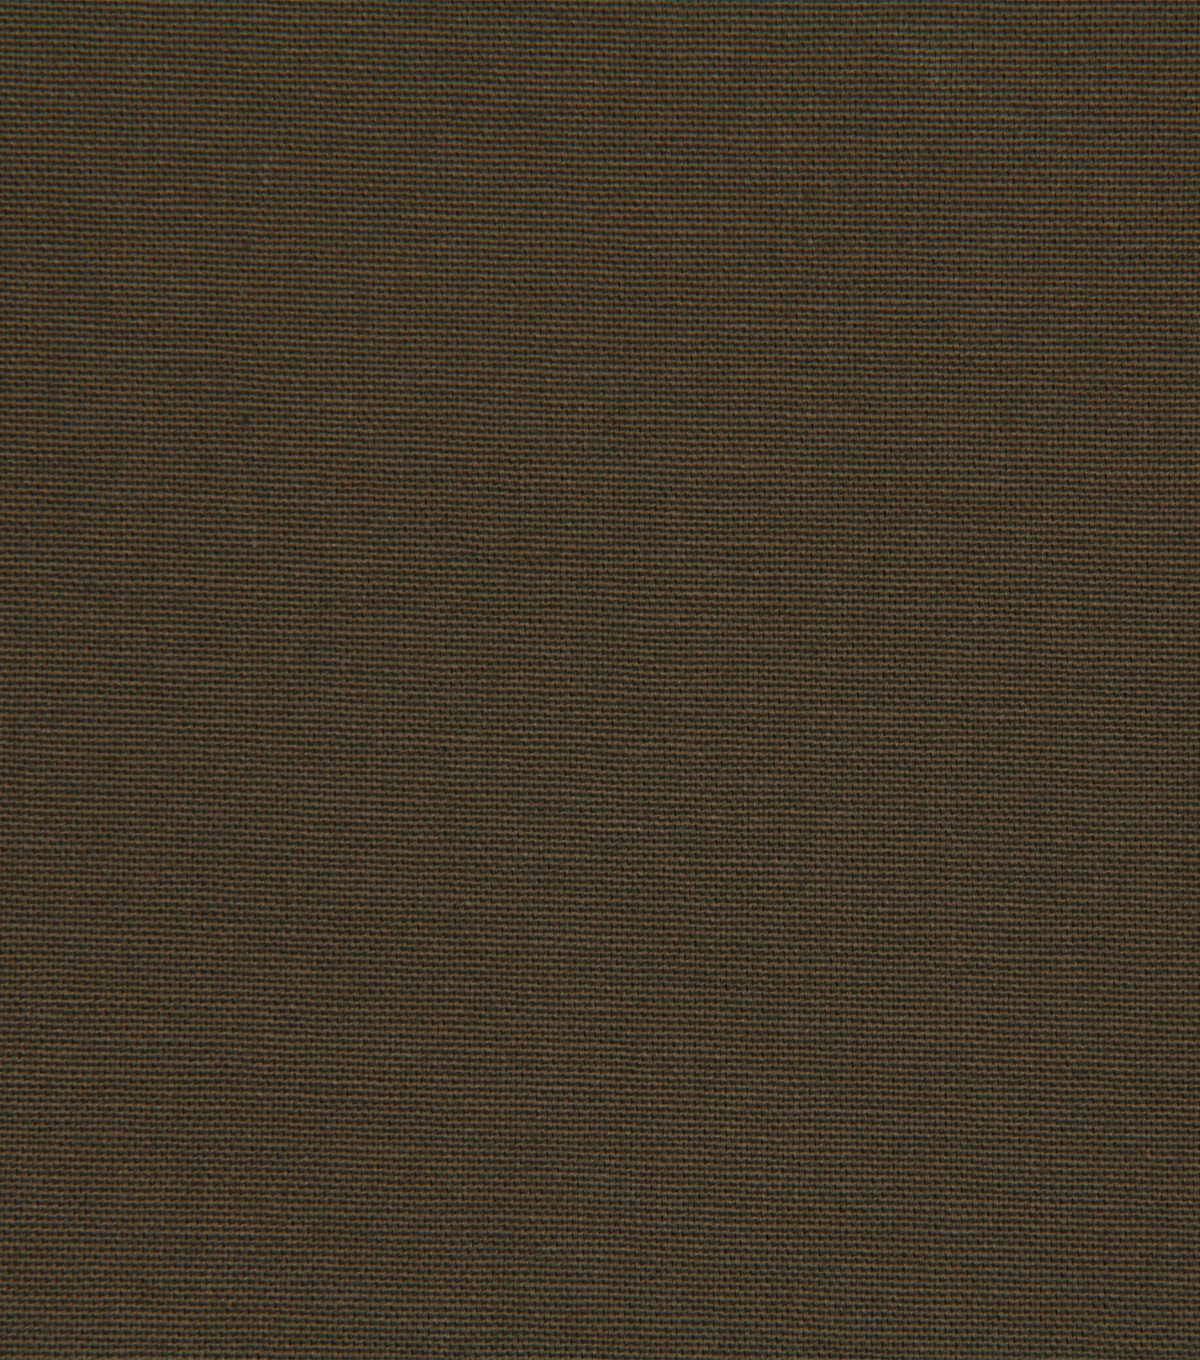 Home Decor 8\u0022x8\u0022 Fabric Swatch-Robert Allen Living Simply Bark